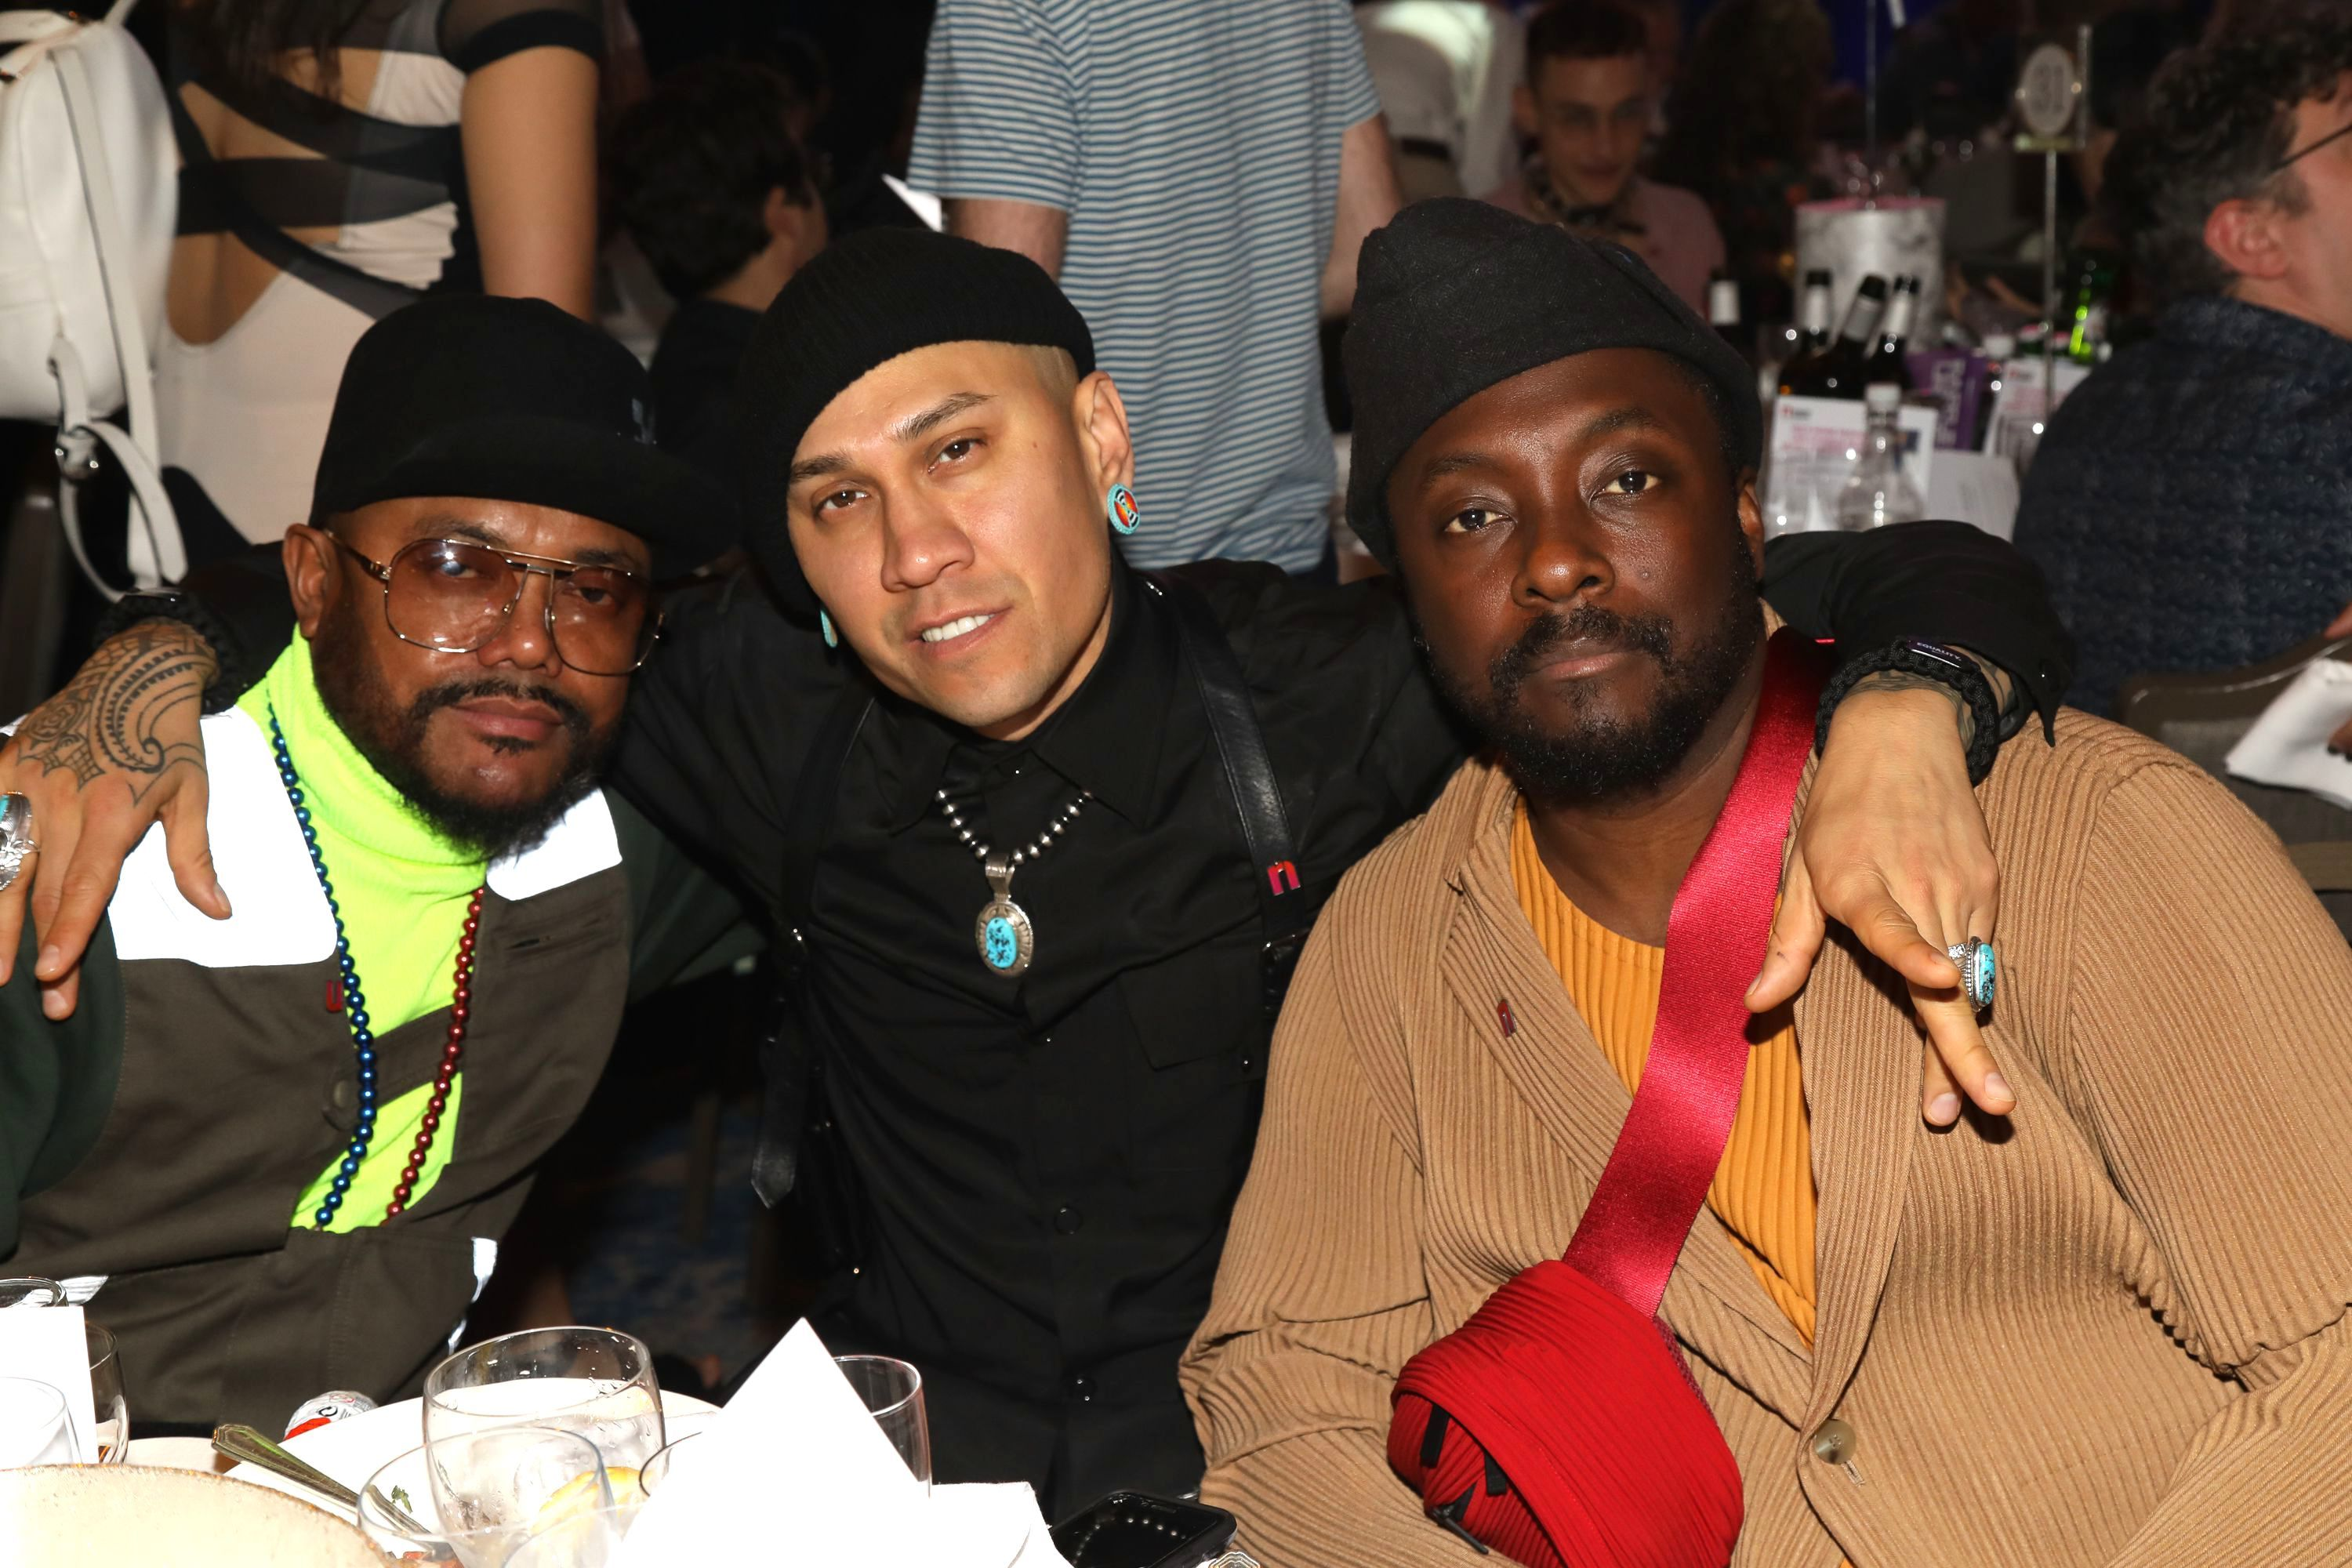 Black Eyed Peas members apl.de.ap, Taboo and will.i.am pose together at the O2 Silver Clef Awards in support of 